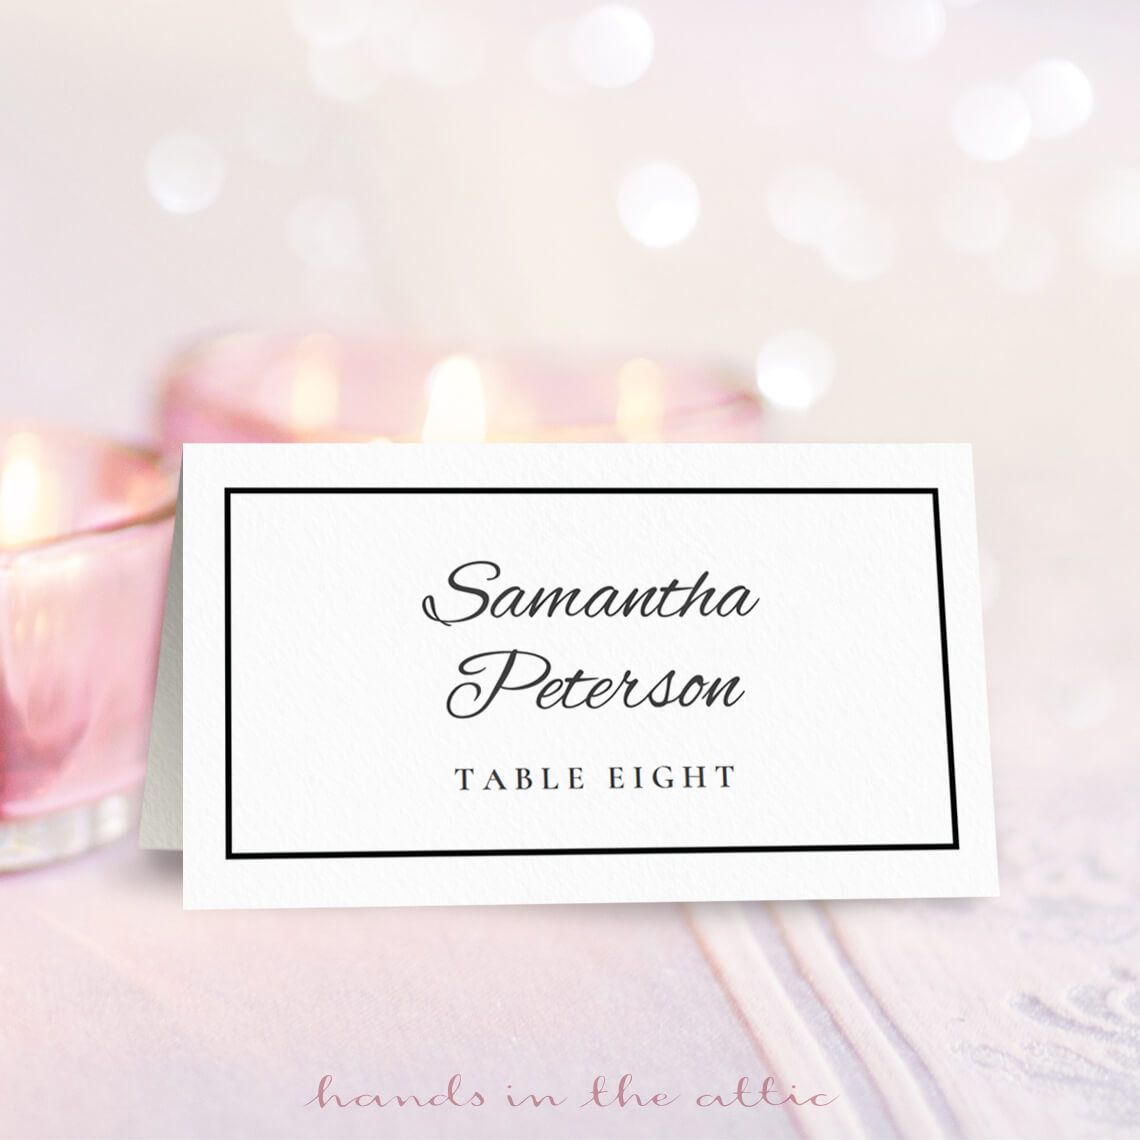 Wedding Place Card Template | Free On Handsintheattic | Place - Free Printable Place Cards Template